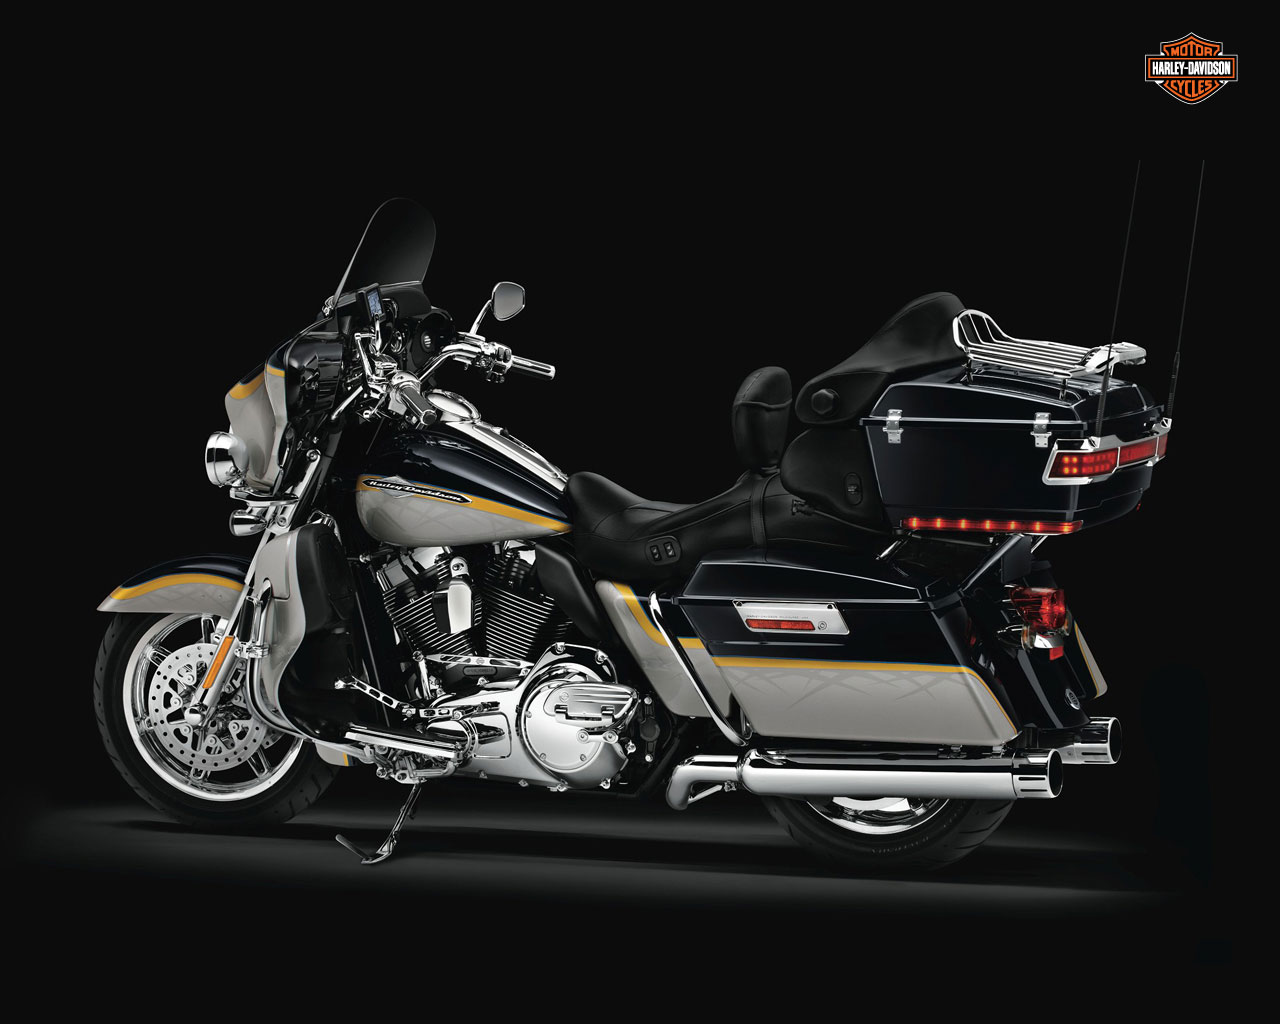 Harley-Davidson FLHTC Electra Glide Classic 2002 pics #17770